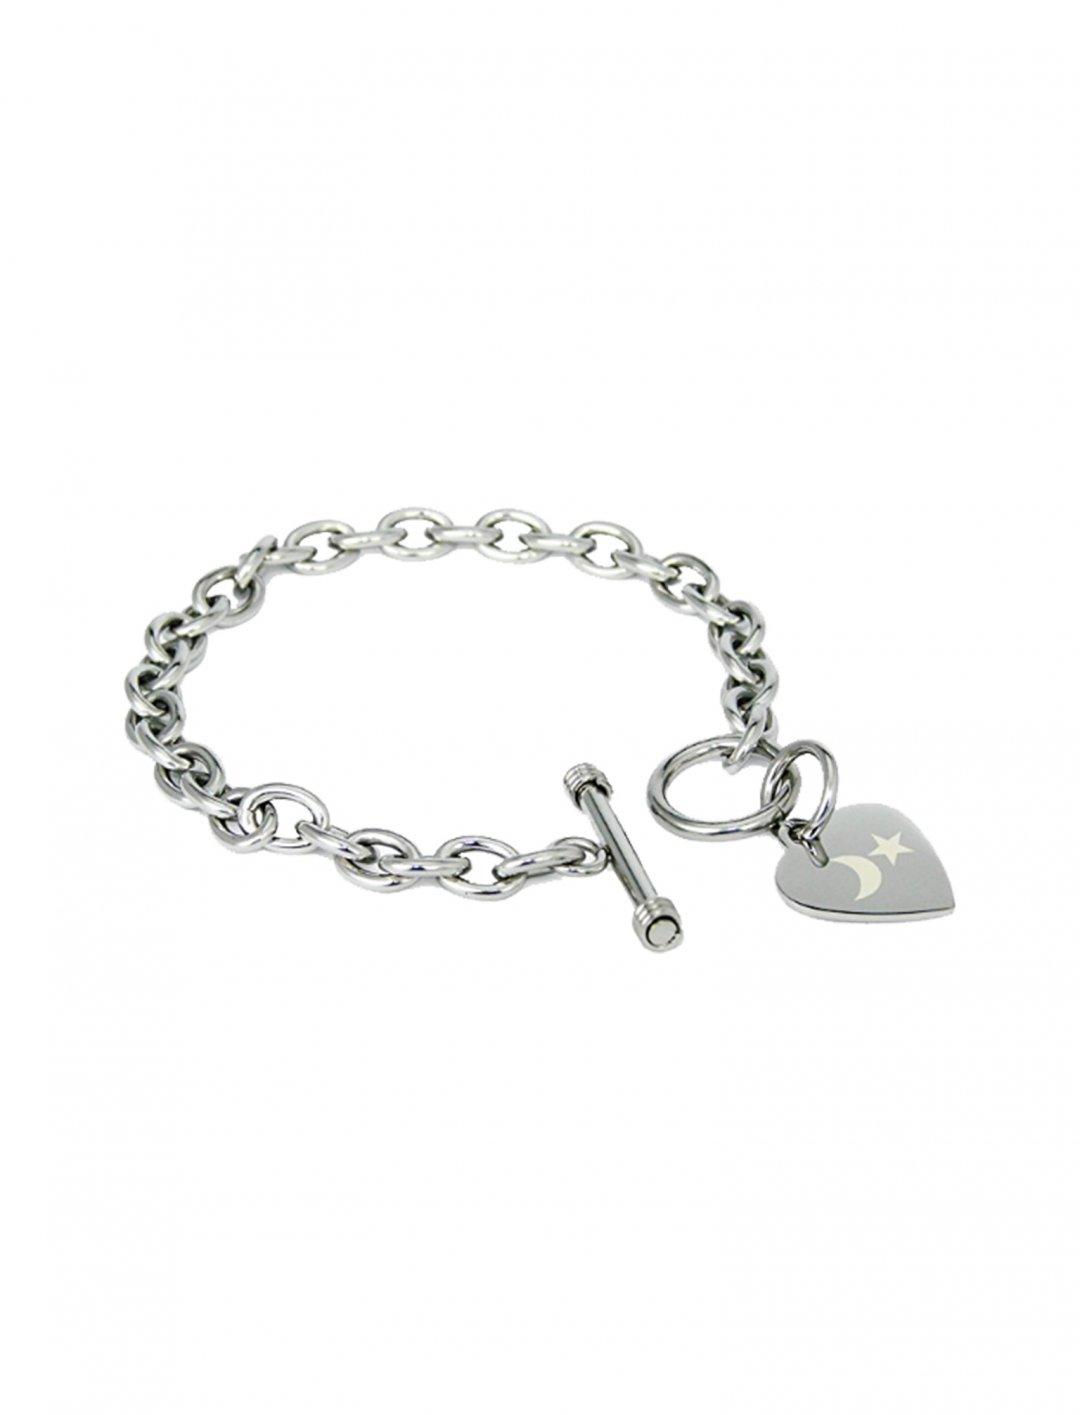 Engraved Heart Tag Bracelet Accessories Roll over image to zoom in      Tioneer